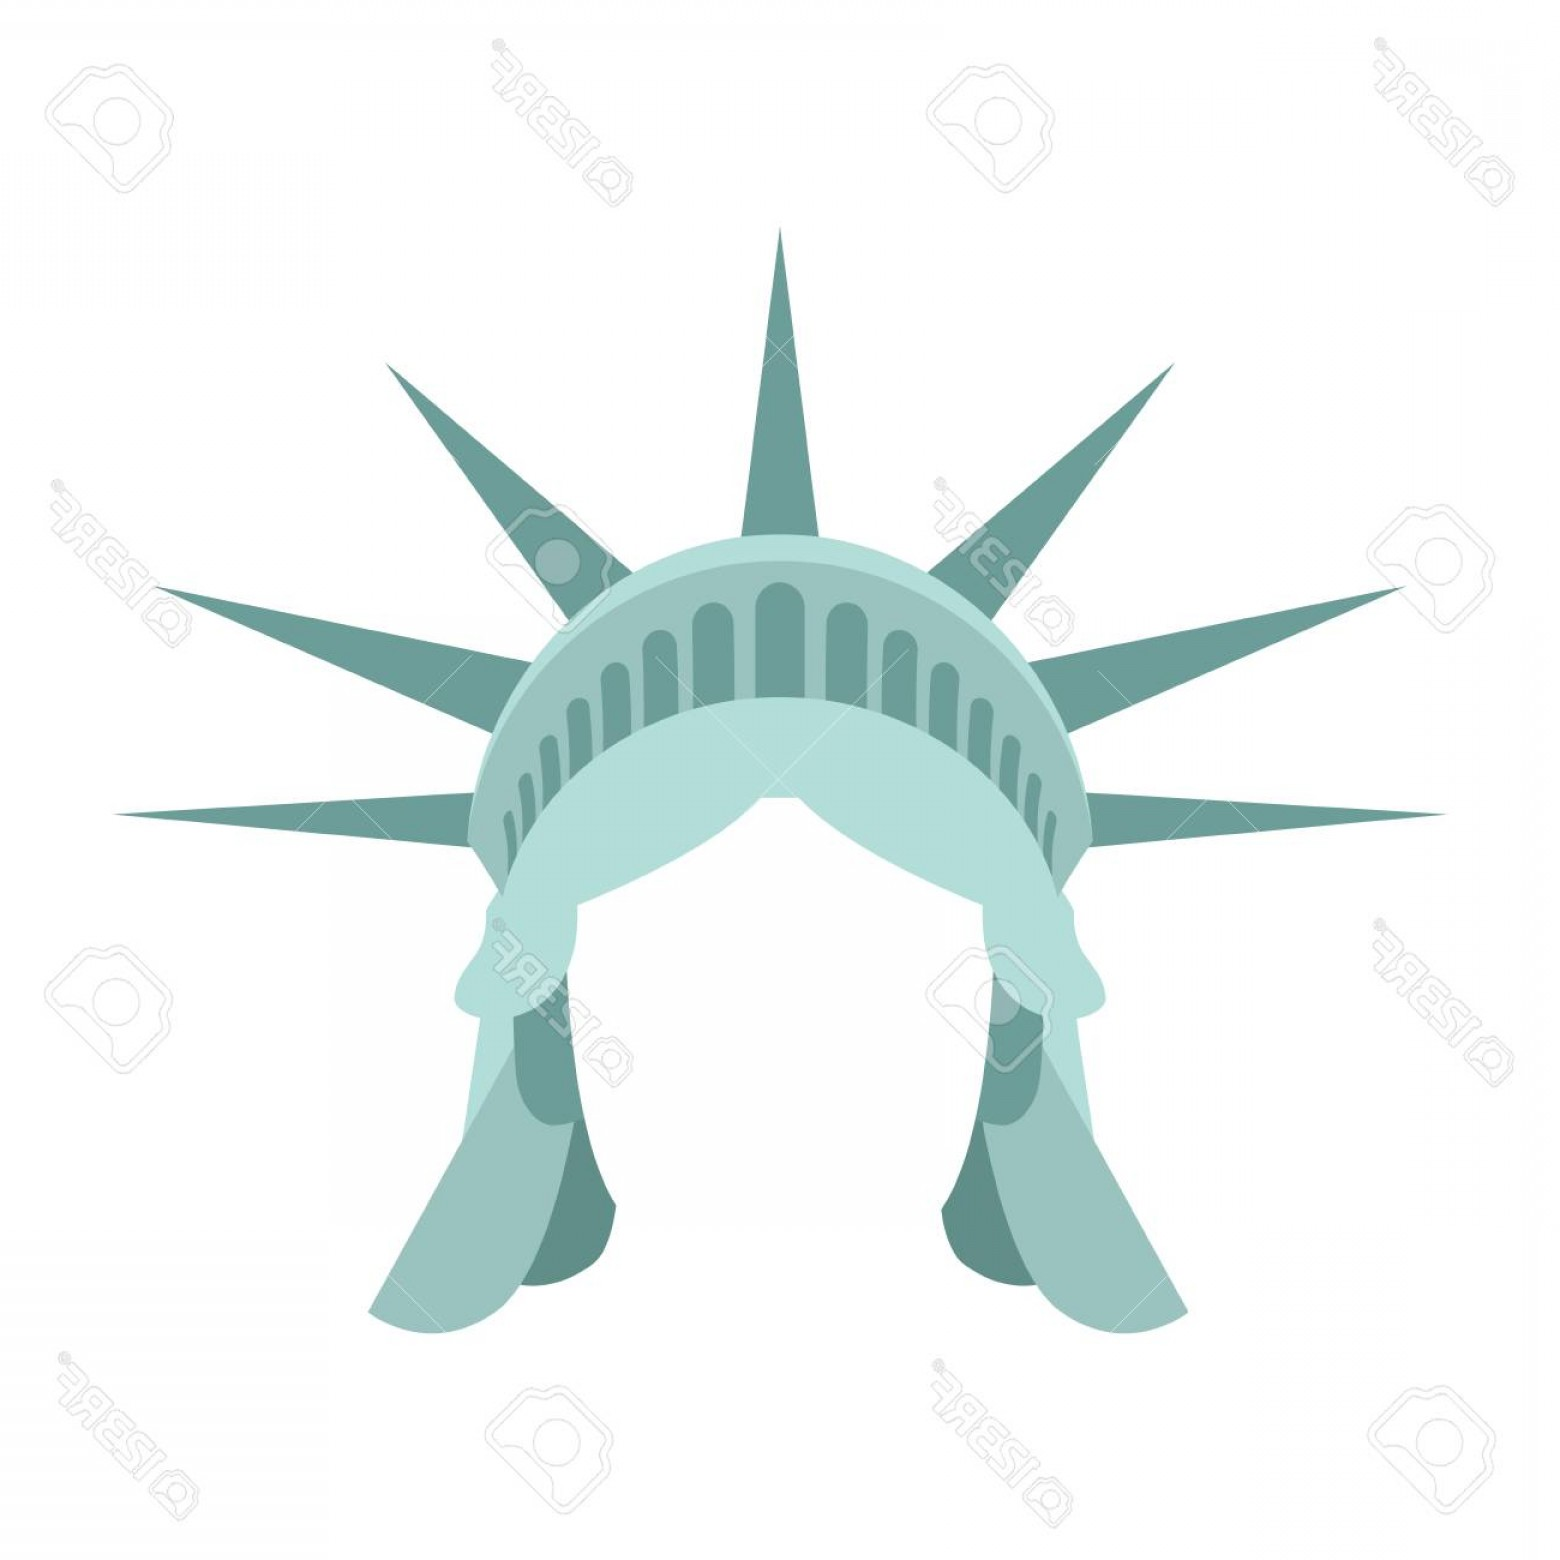 Statue Of Liberty Face Vector: Photostock Vector Statue Of Liberty Template Face Head Mock Up Hair And Crown